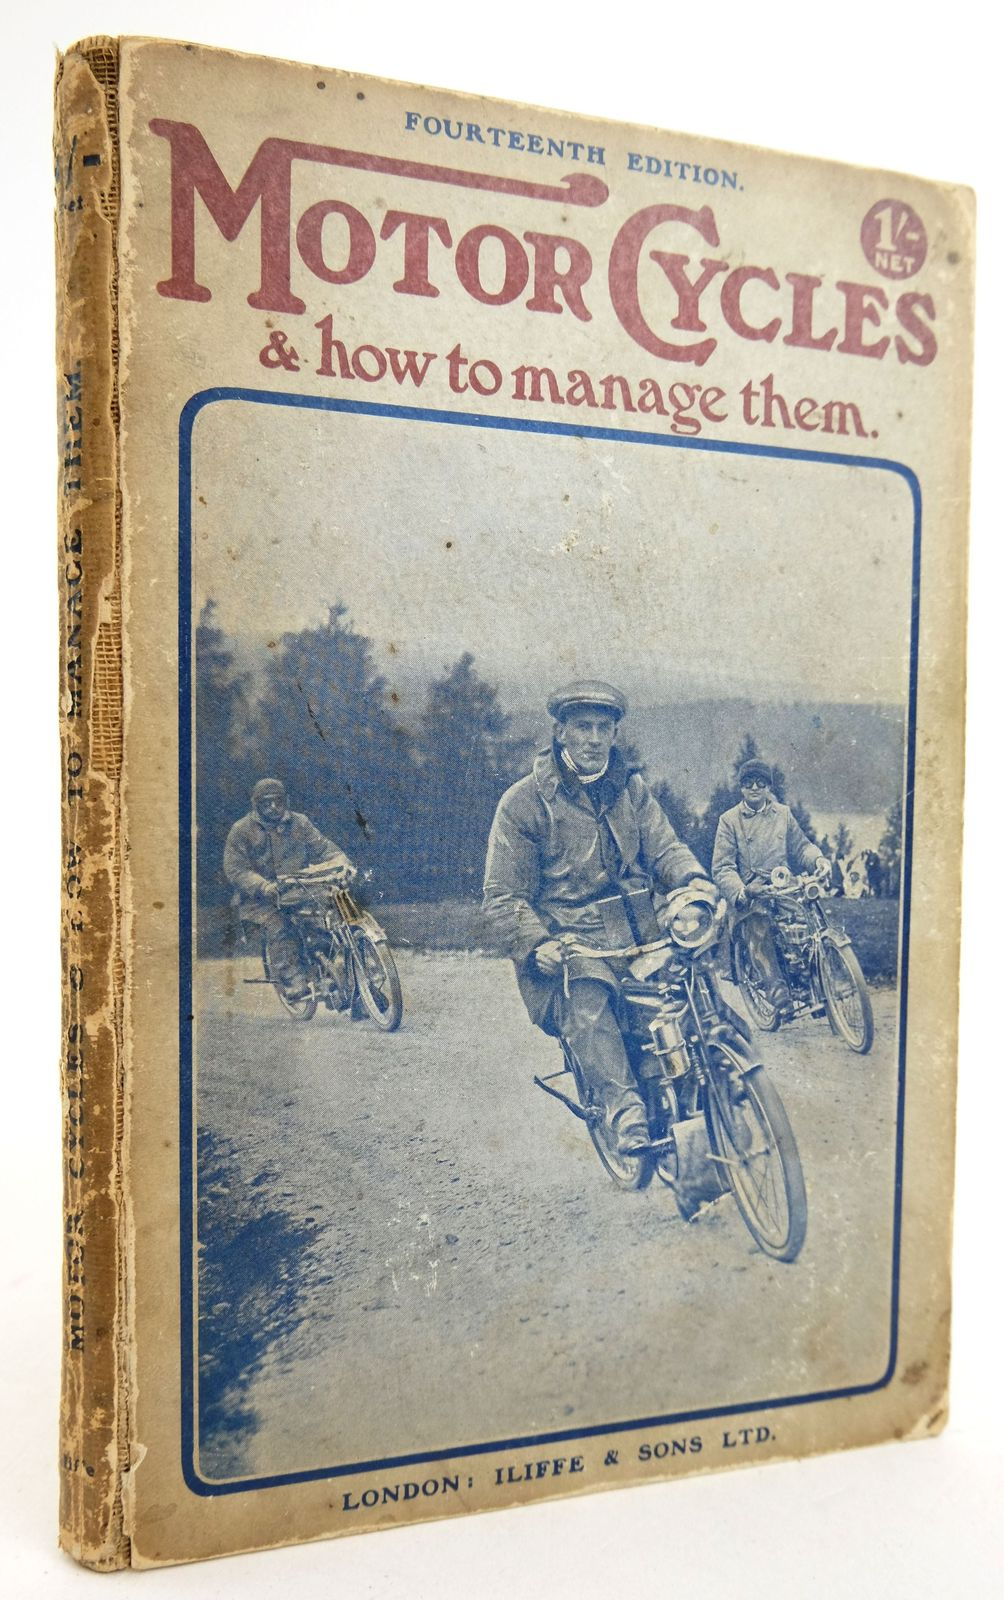 Photo of MOTOR CYCLES AND HOW TO MANAGE THEM published by Iliffe & Sons Limited (STOCK CODE: 1819443)  for sale by Stella & Rose's Books